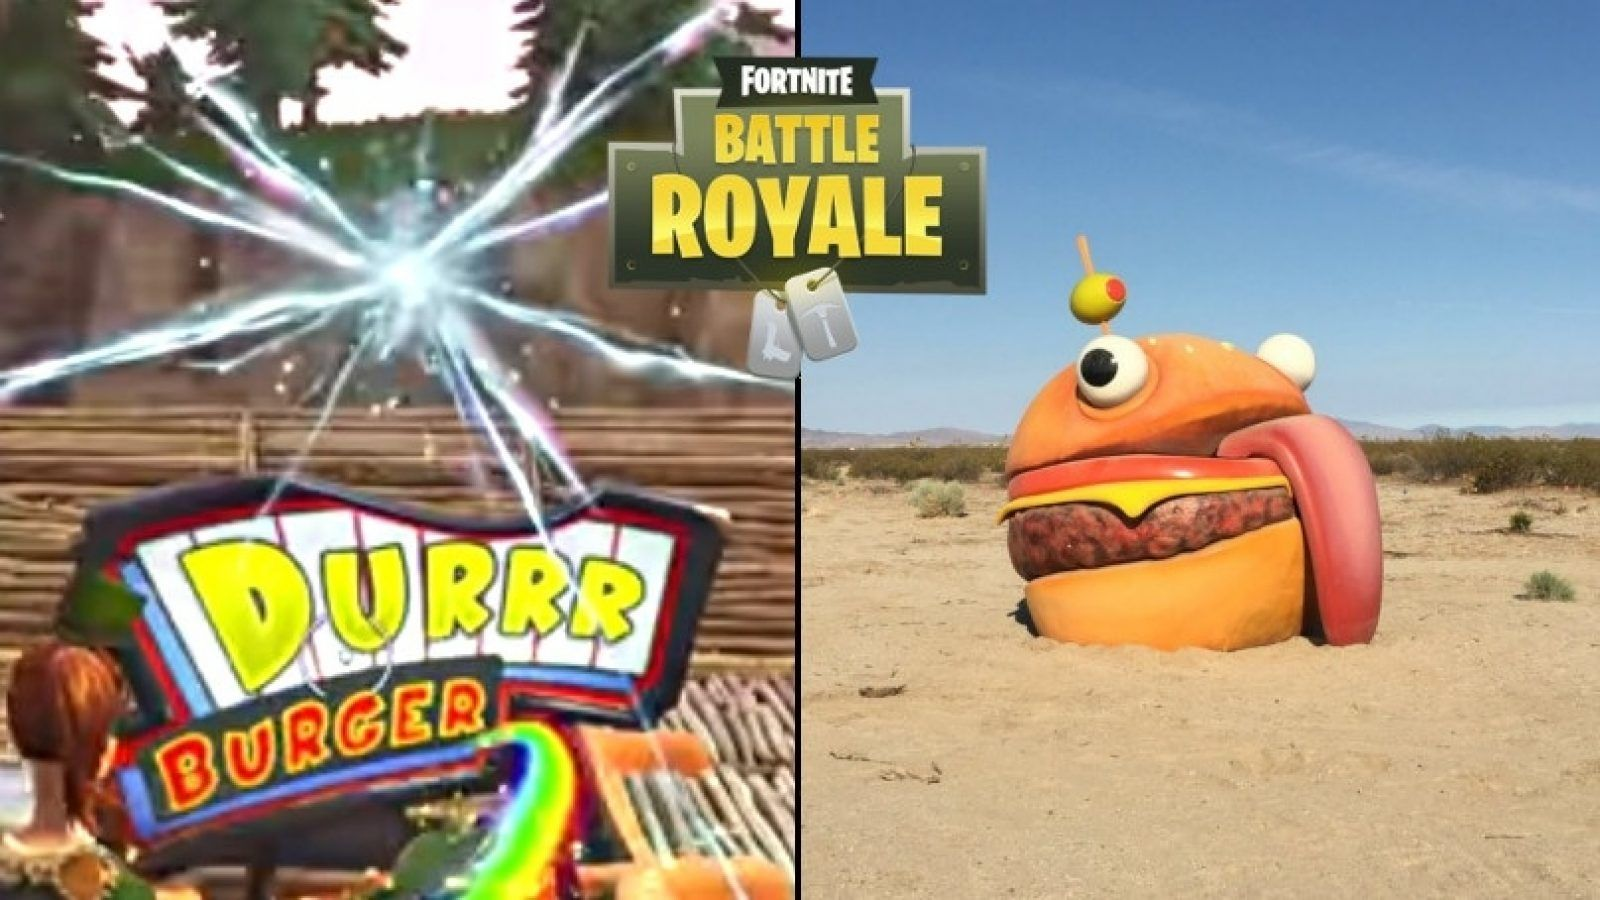 1600x900 Missing 'Durrr Burger' Sign From Fortnite Found in Real Life Desert ...